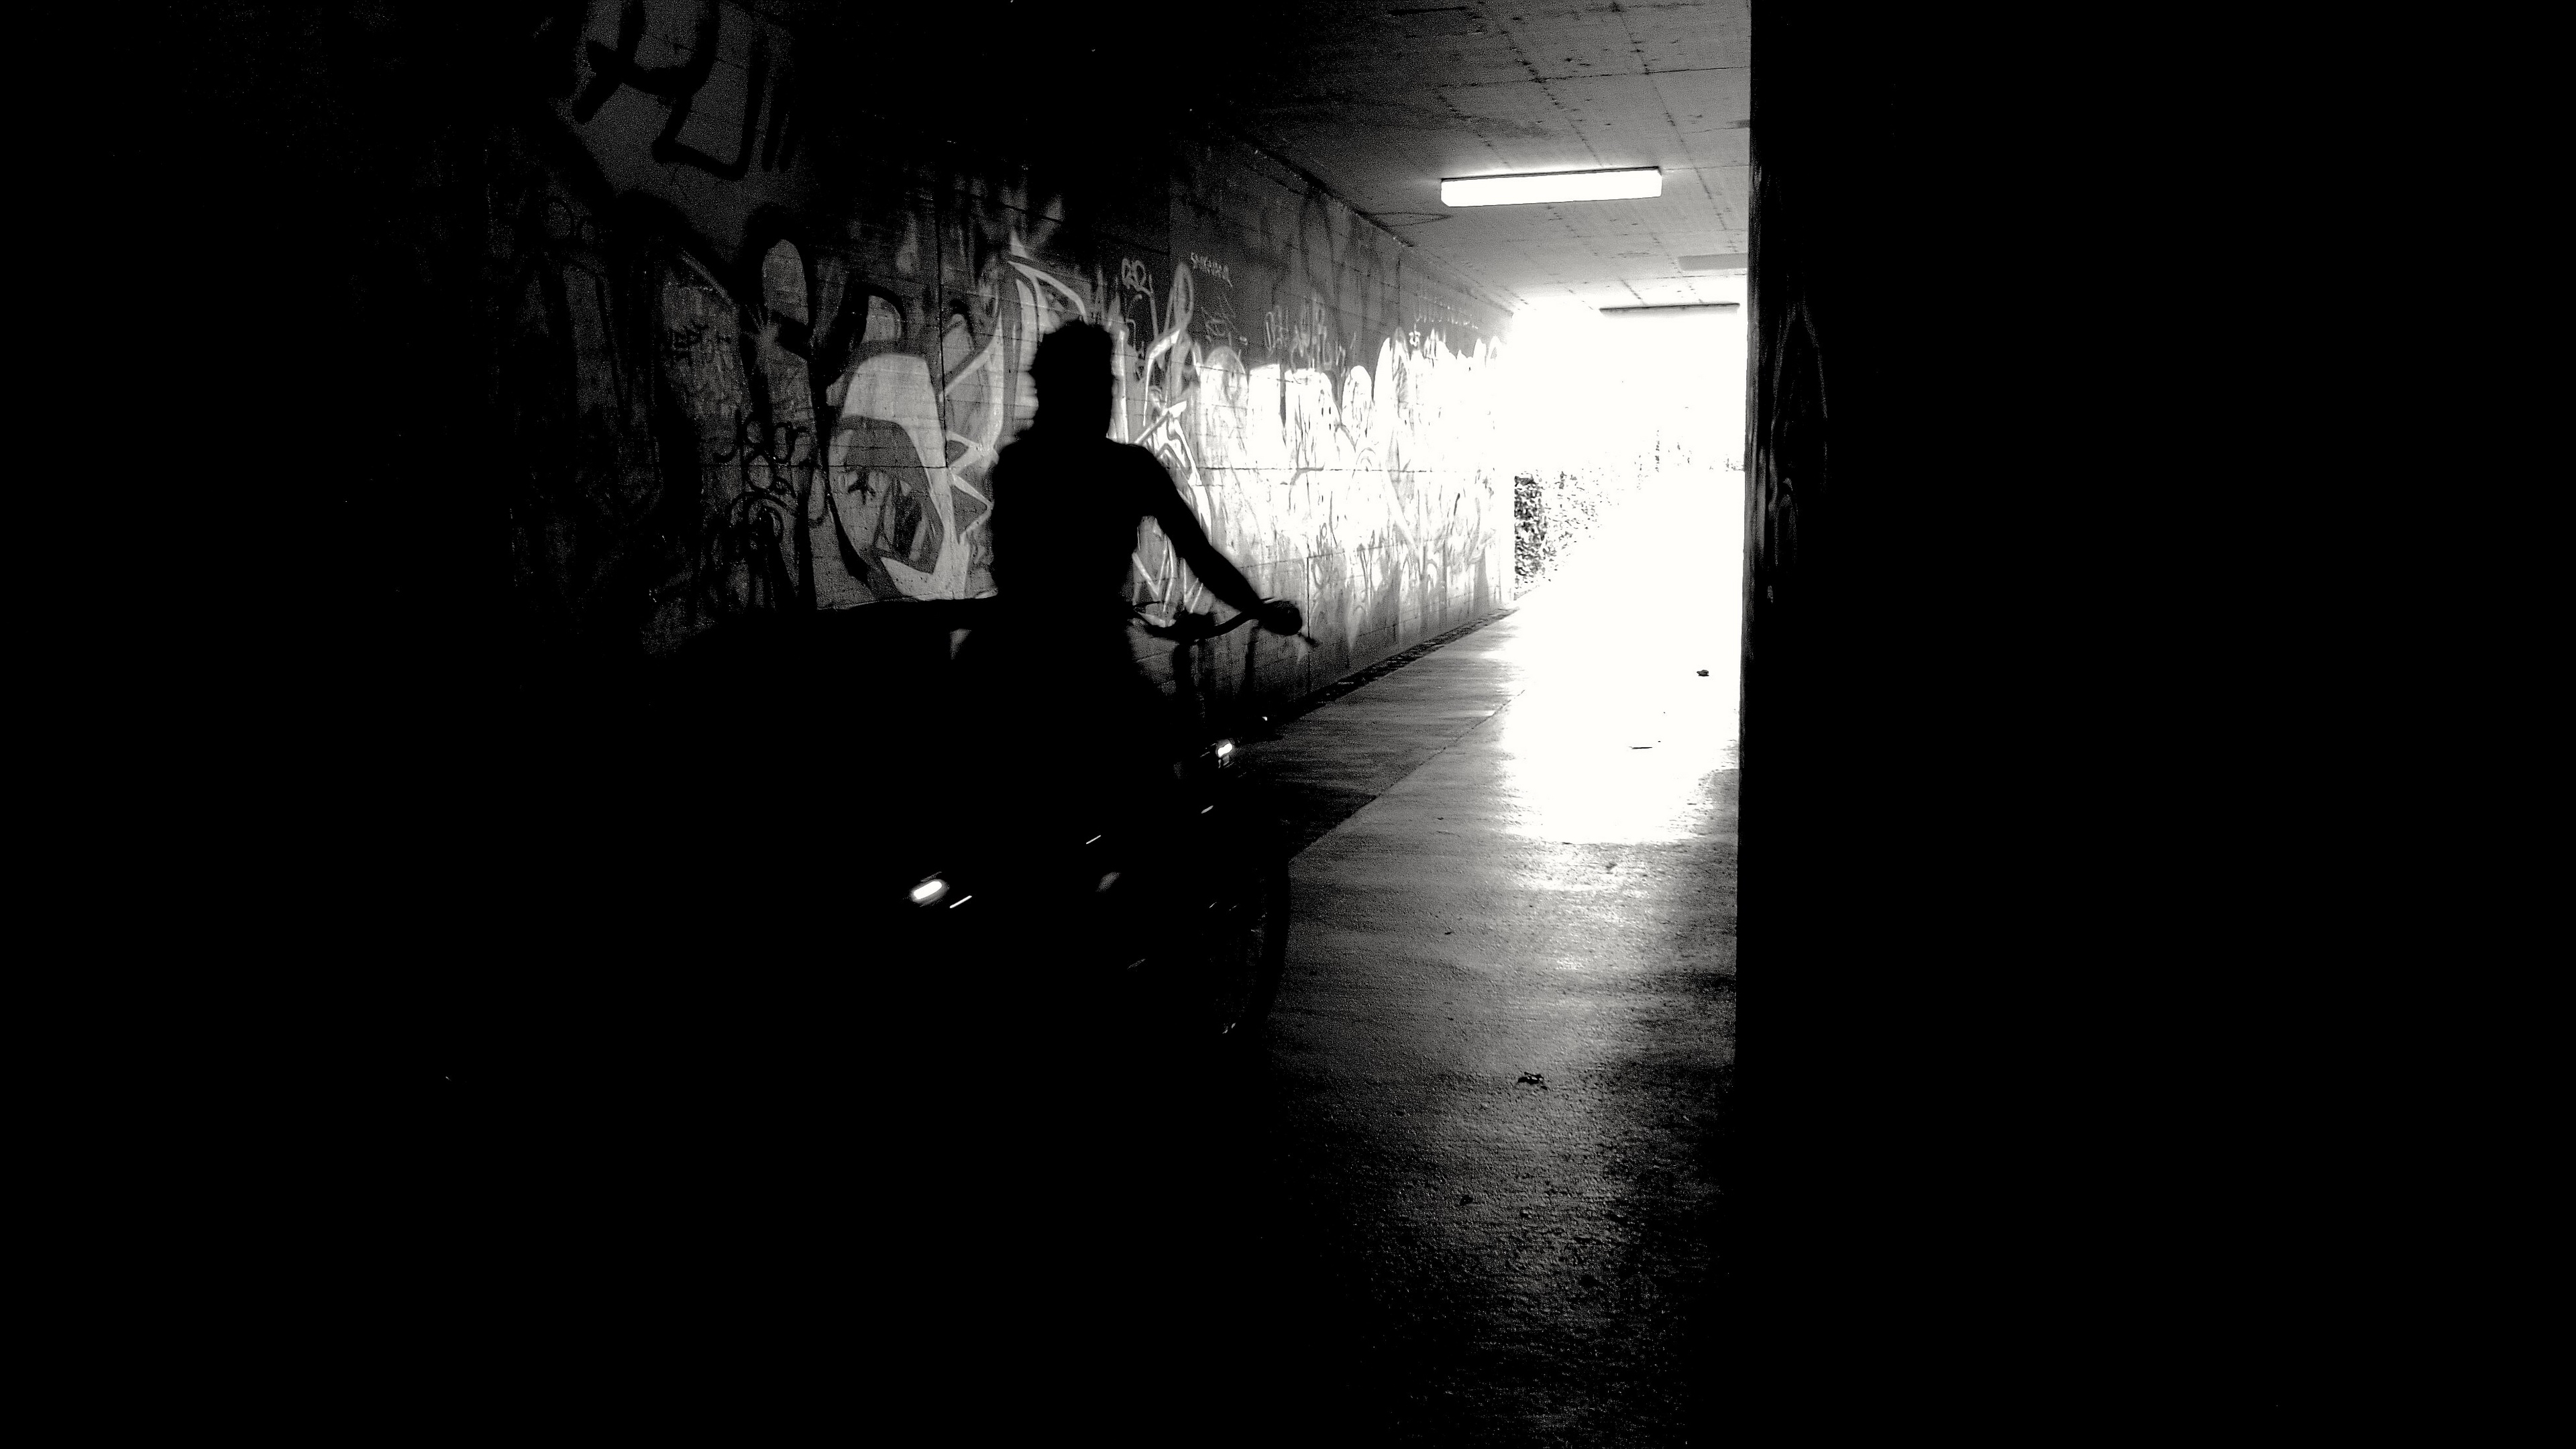 bicyclist bw silhouette graffiti 4k 1540575360 - bicyclist, bw, silhouette, graffiti 4k - Silhouette, bw, bicyclist